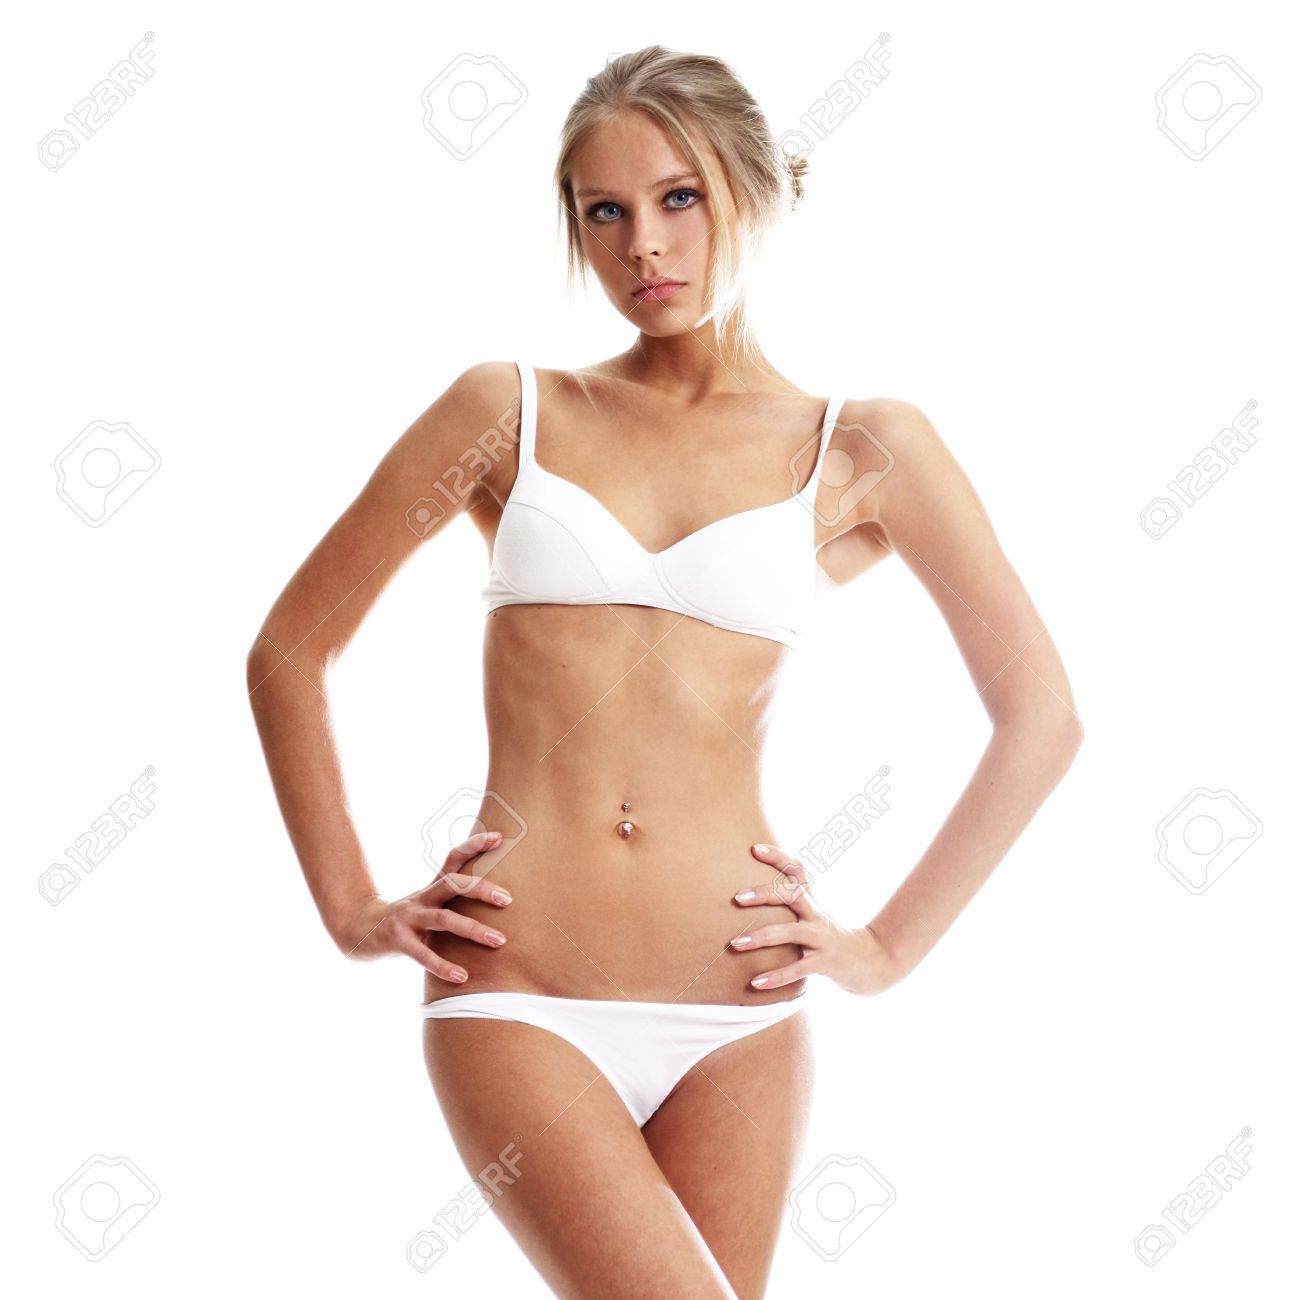 Sexy Underwear Model Stock Photo Picture And Royalty Free Image Image 18891569